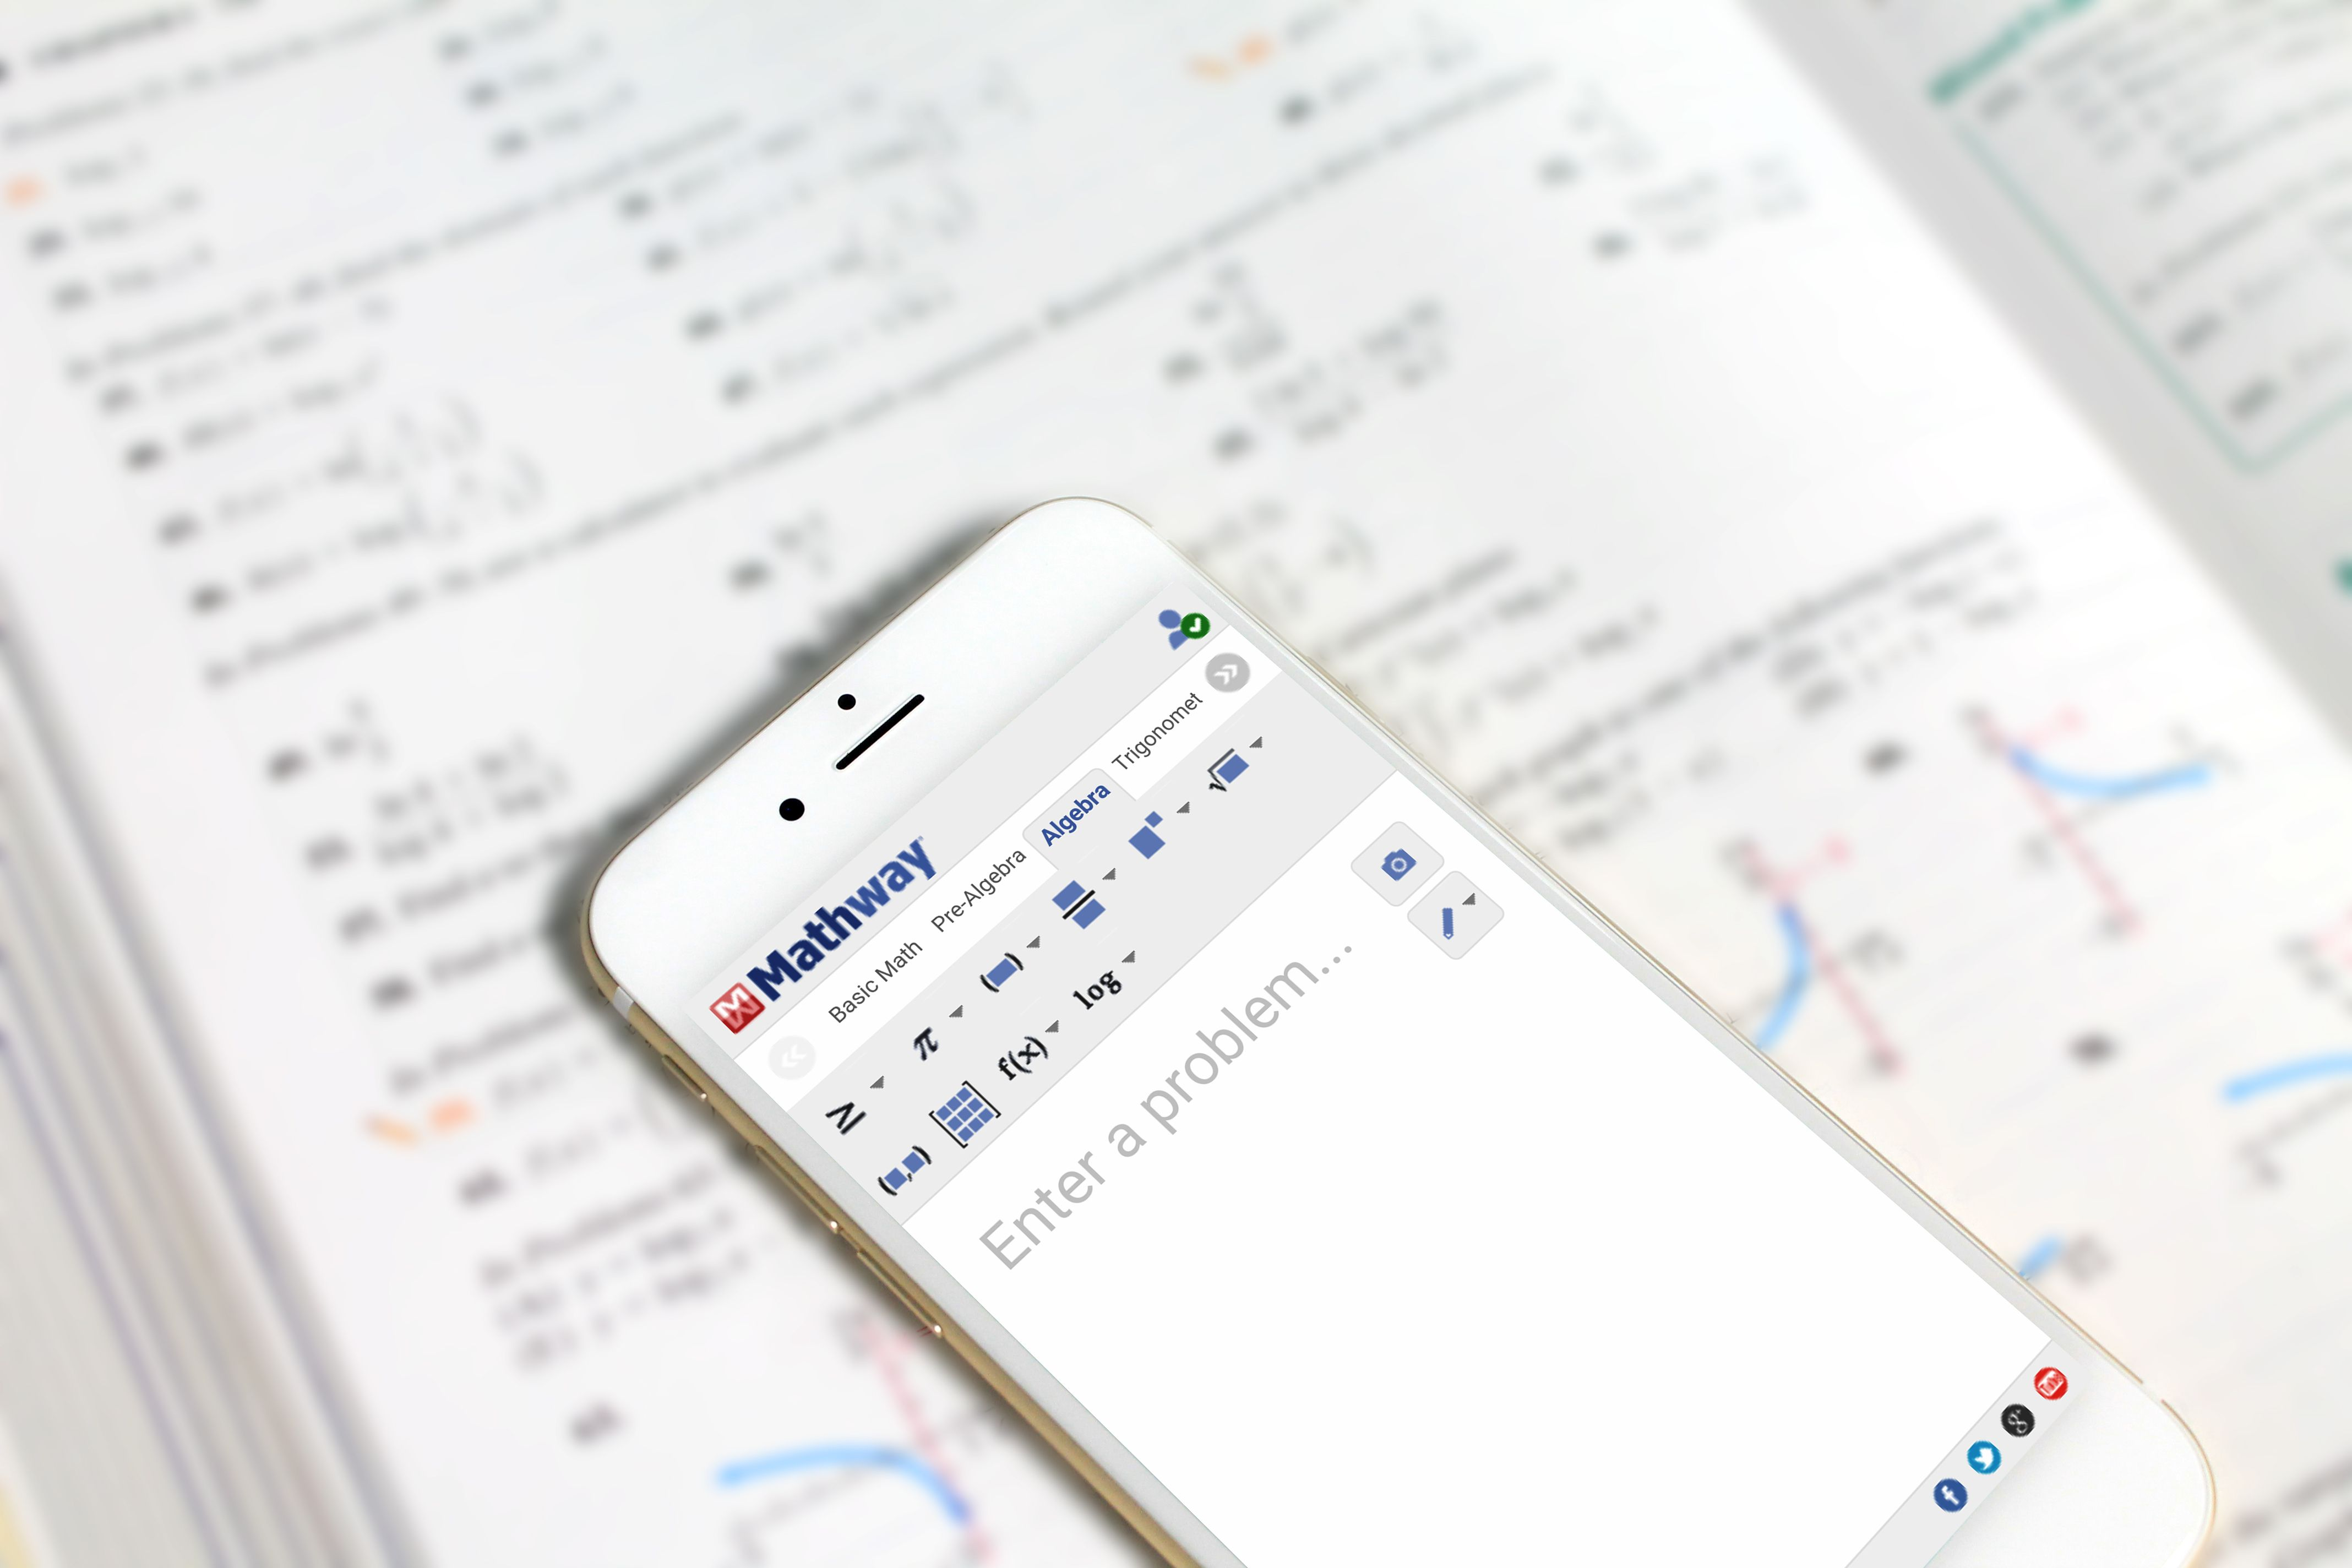 30 Cool Apps For Android Phones And Tablets In 2016 Check Out 9 Mathway Is A Great Application For Those Who Are Tak Cool Apps For Android Android Apps App